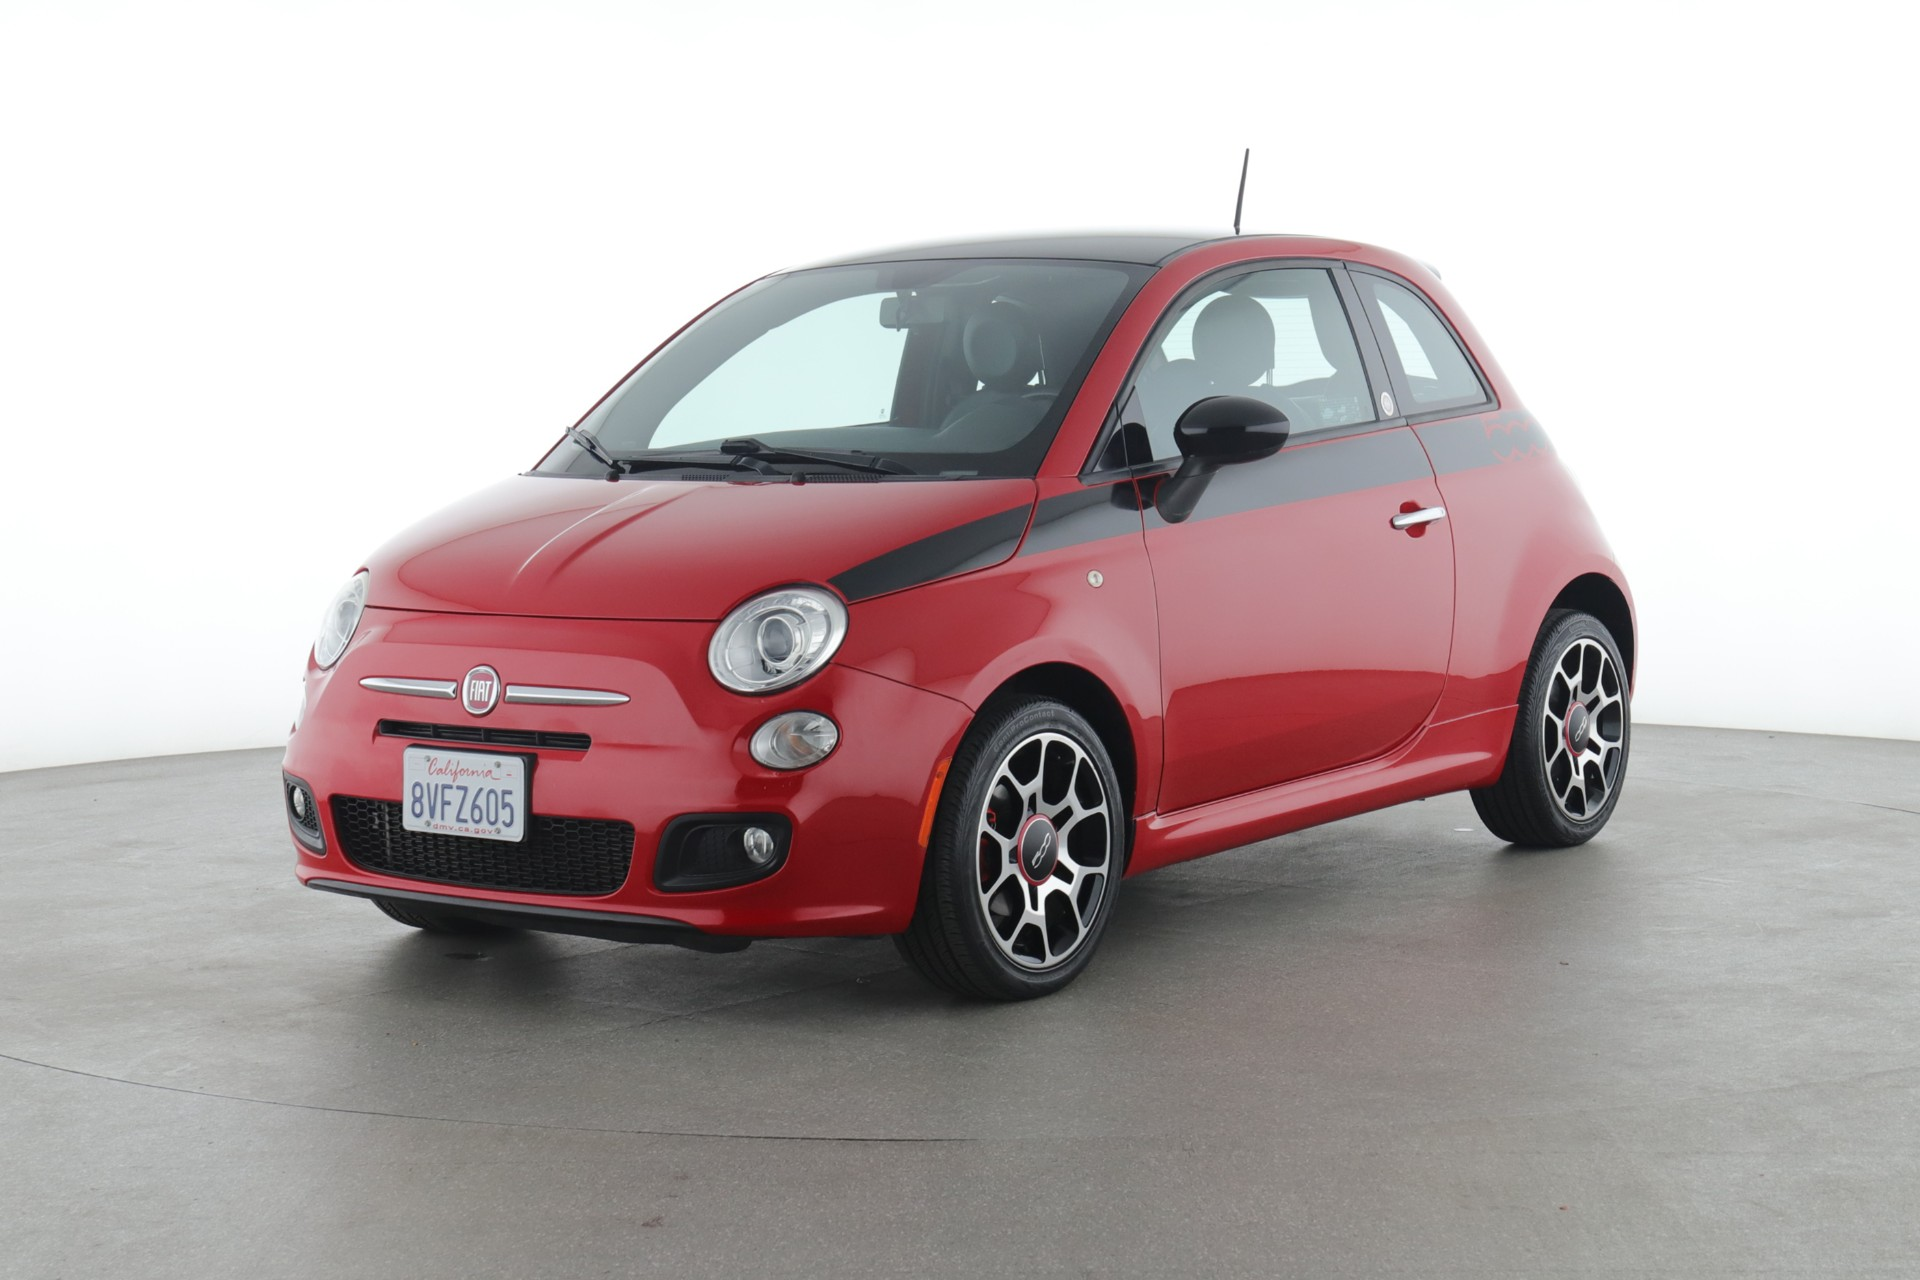 2012 FIAT 500 Sport (from $9,300)